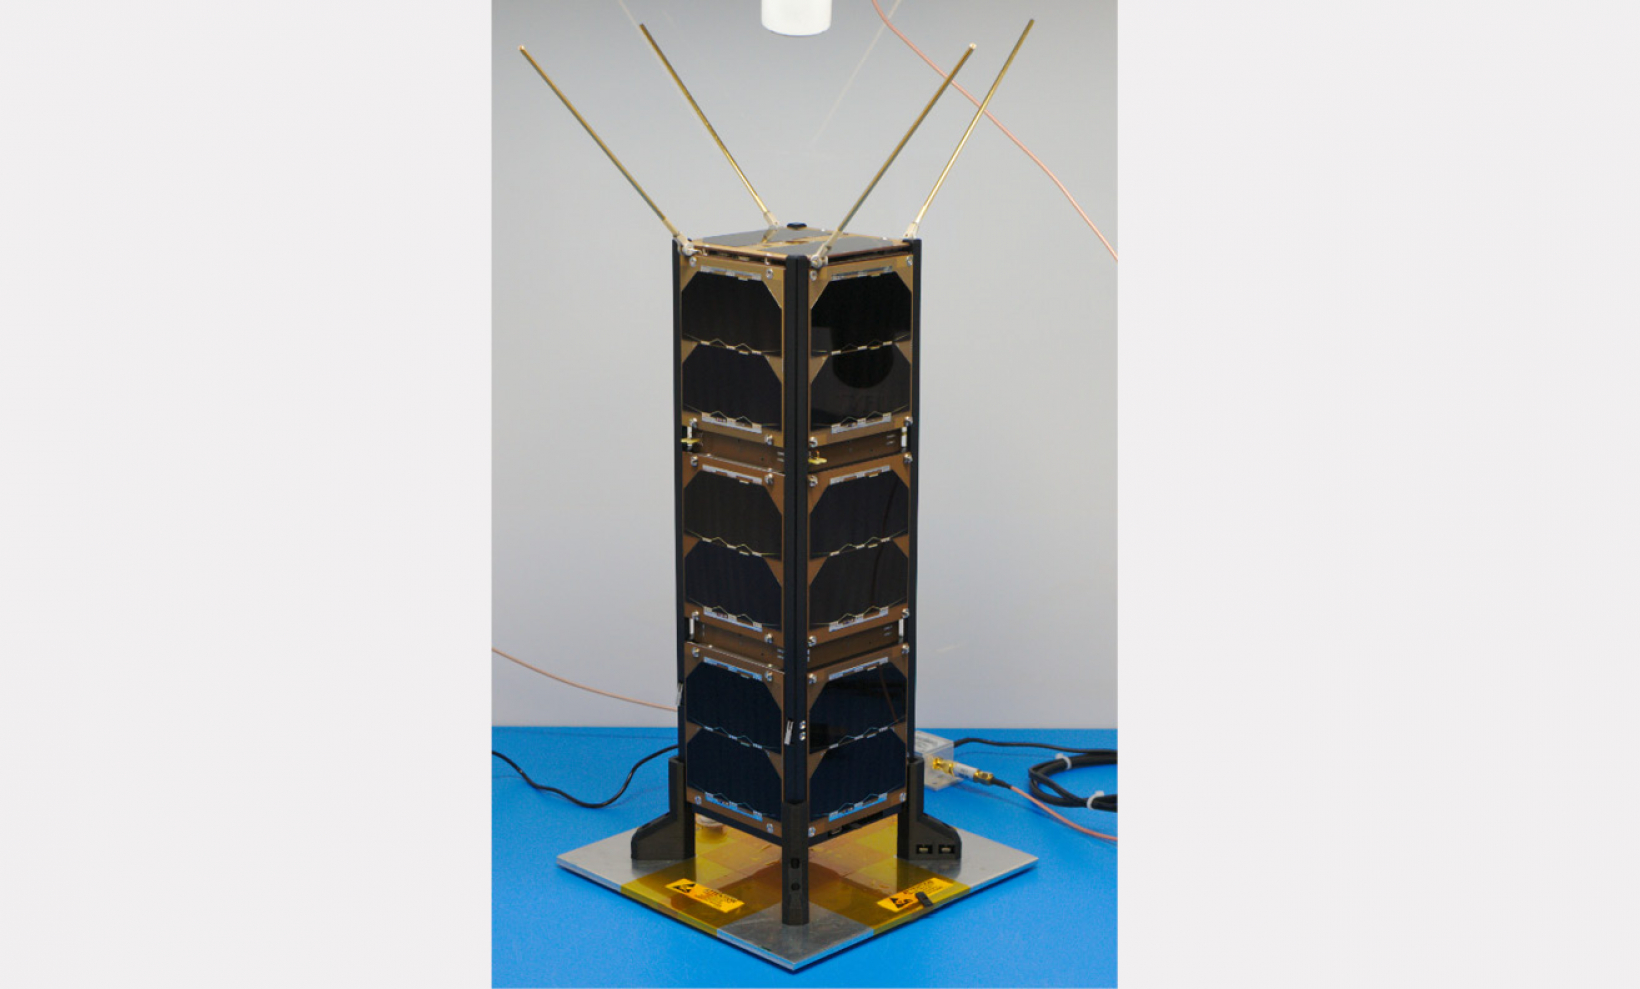 QN400-Space in GomSpace SDR and cubesat of University of Ohio Image, © Courtesy of Ohio University